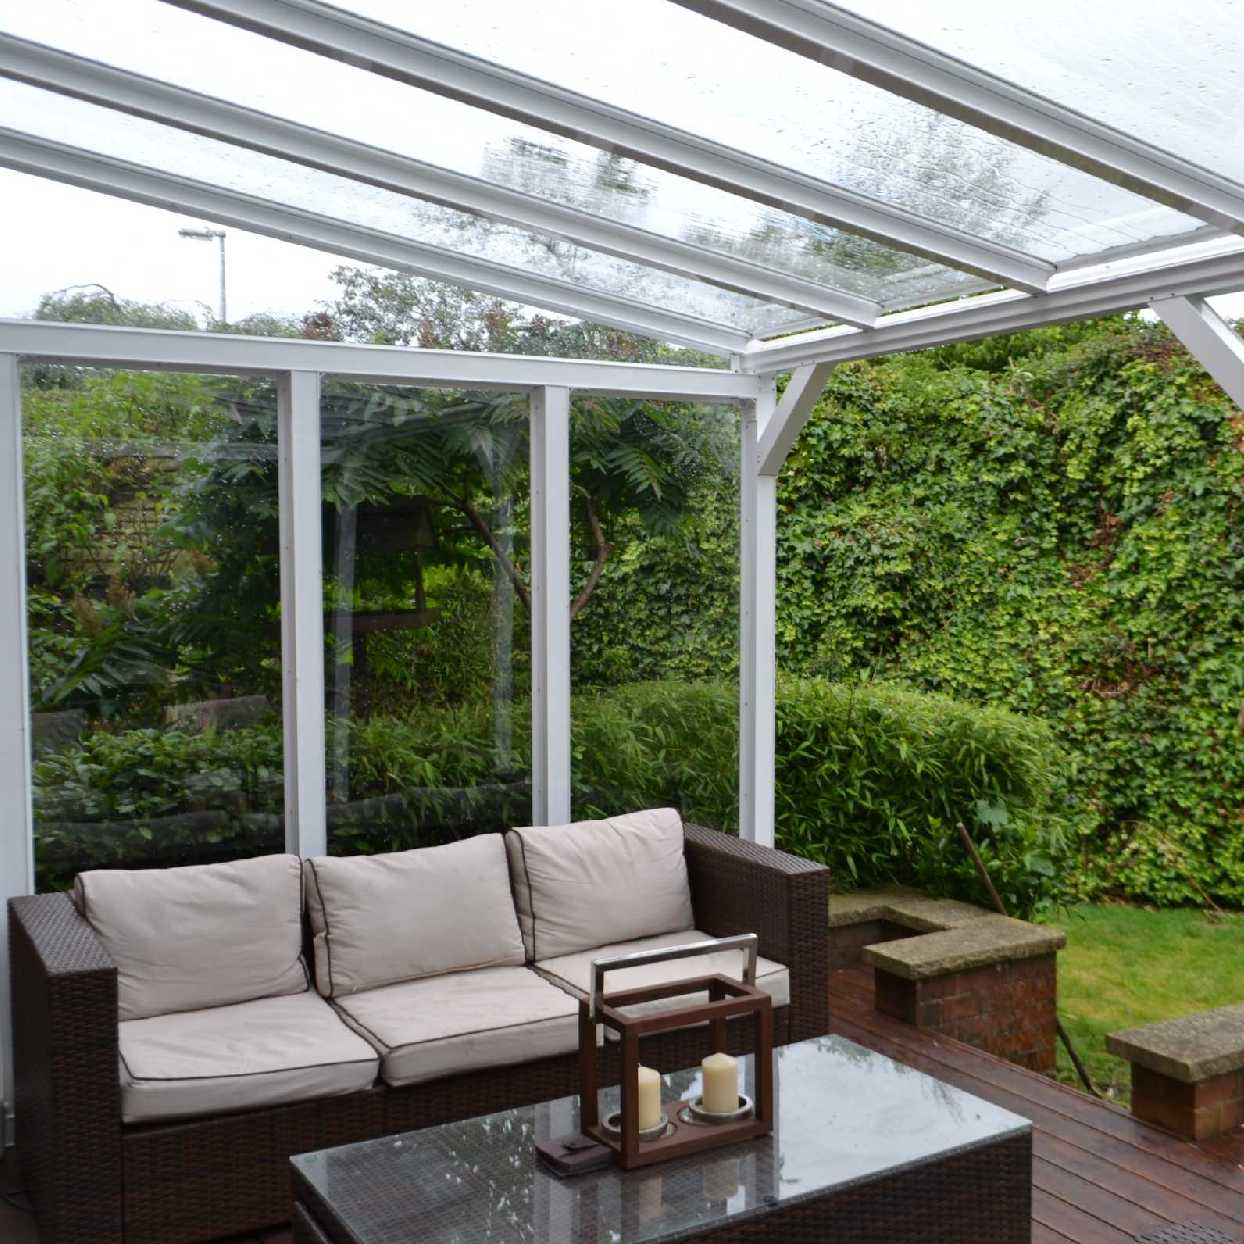 Great deals on Omega Smart White Lean-To Canopy with 16mm Polycarbonate Glazing - 10.6m (W) x 1.5m (P), (5) Supporting Posts